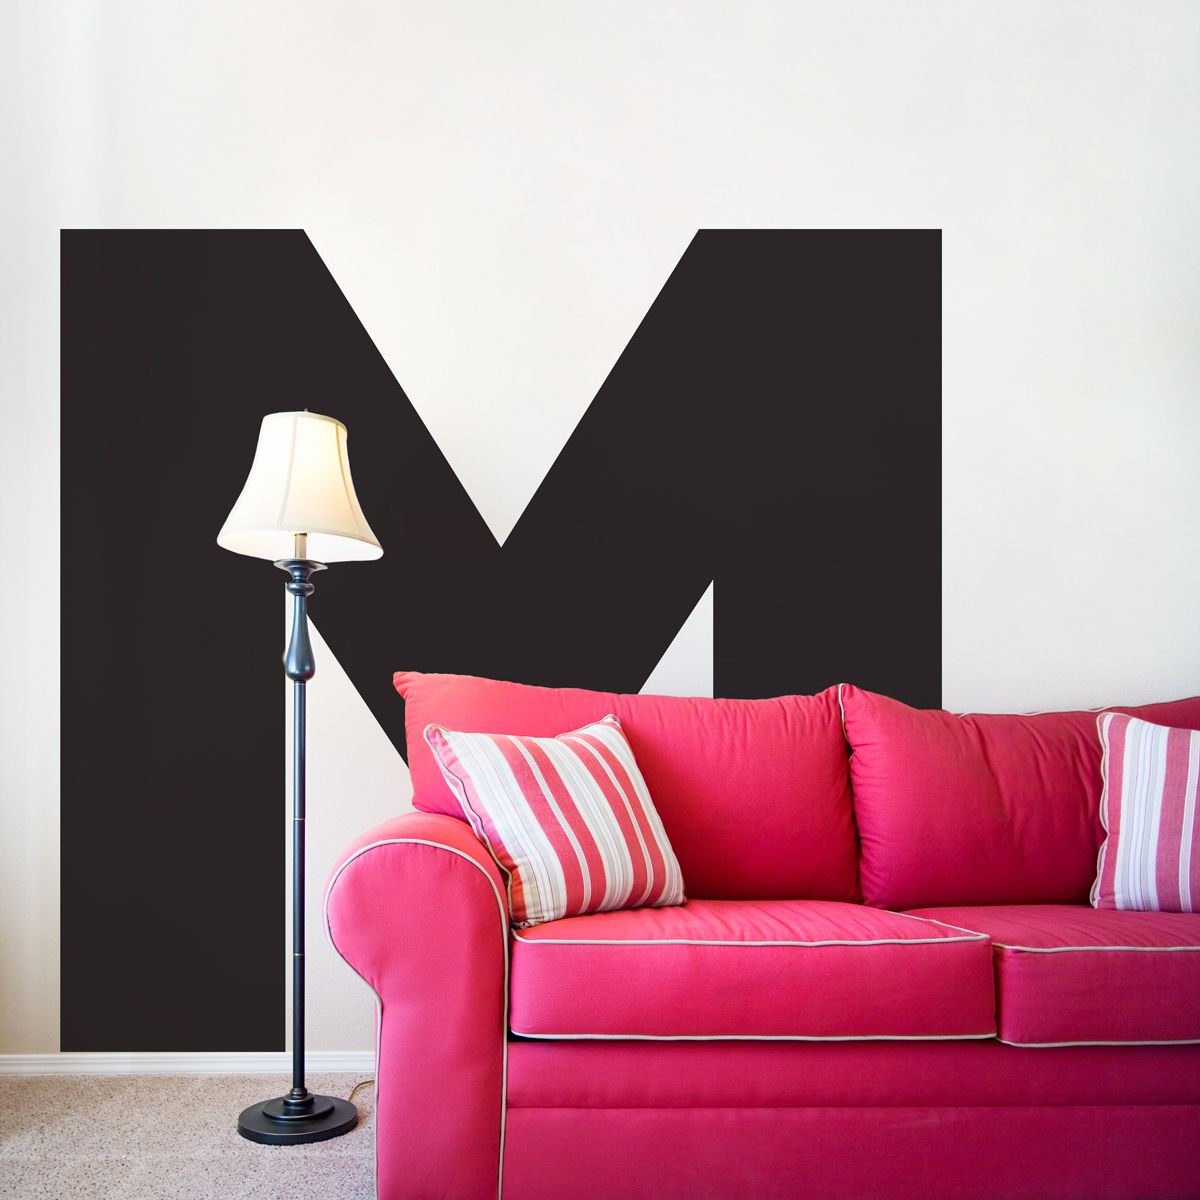 Elegant Large Letter Wall Decal   Pretty Much Perfect For Absolutely Any Room, Even  A Studio